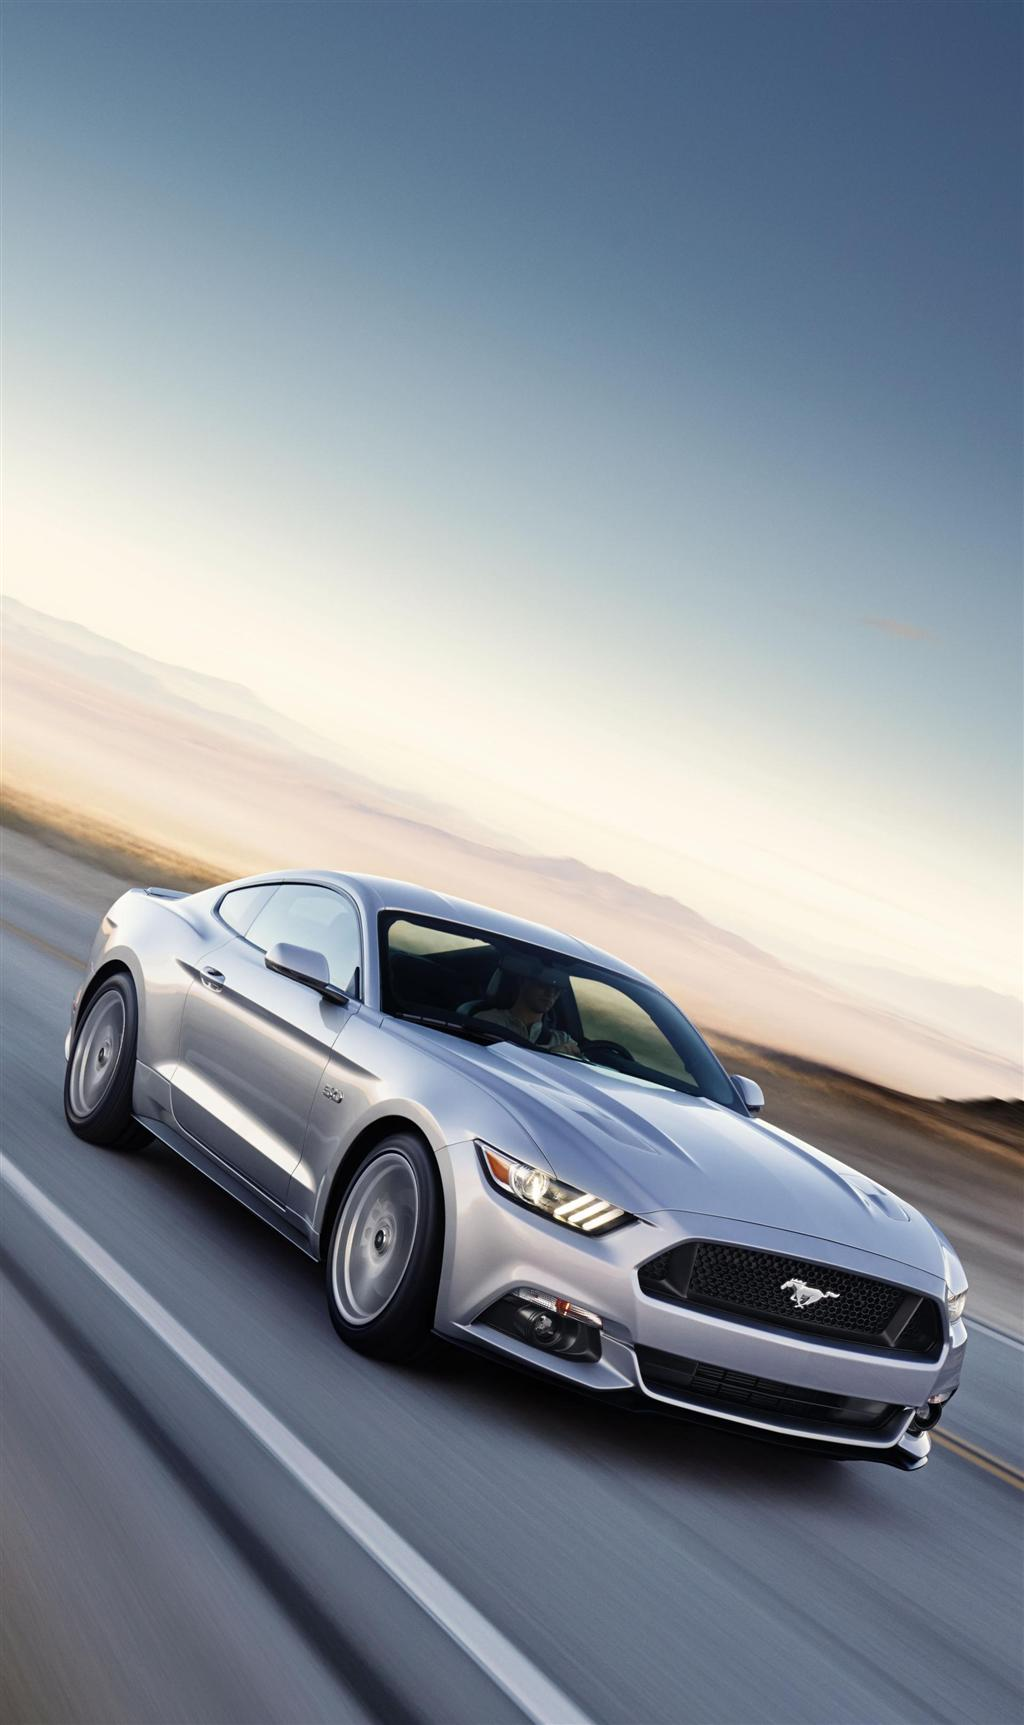 2015 Ford Mustang GT Image. Photo 57 of 69